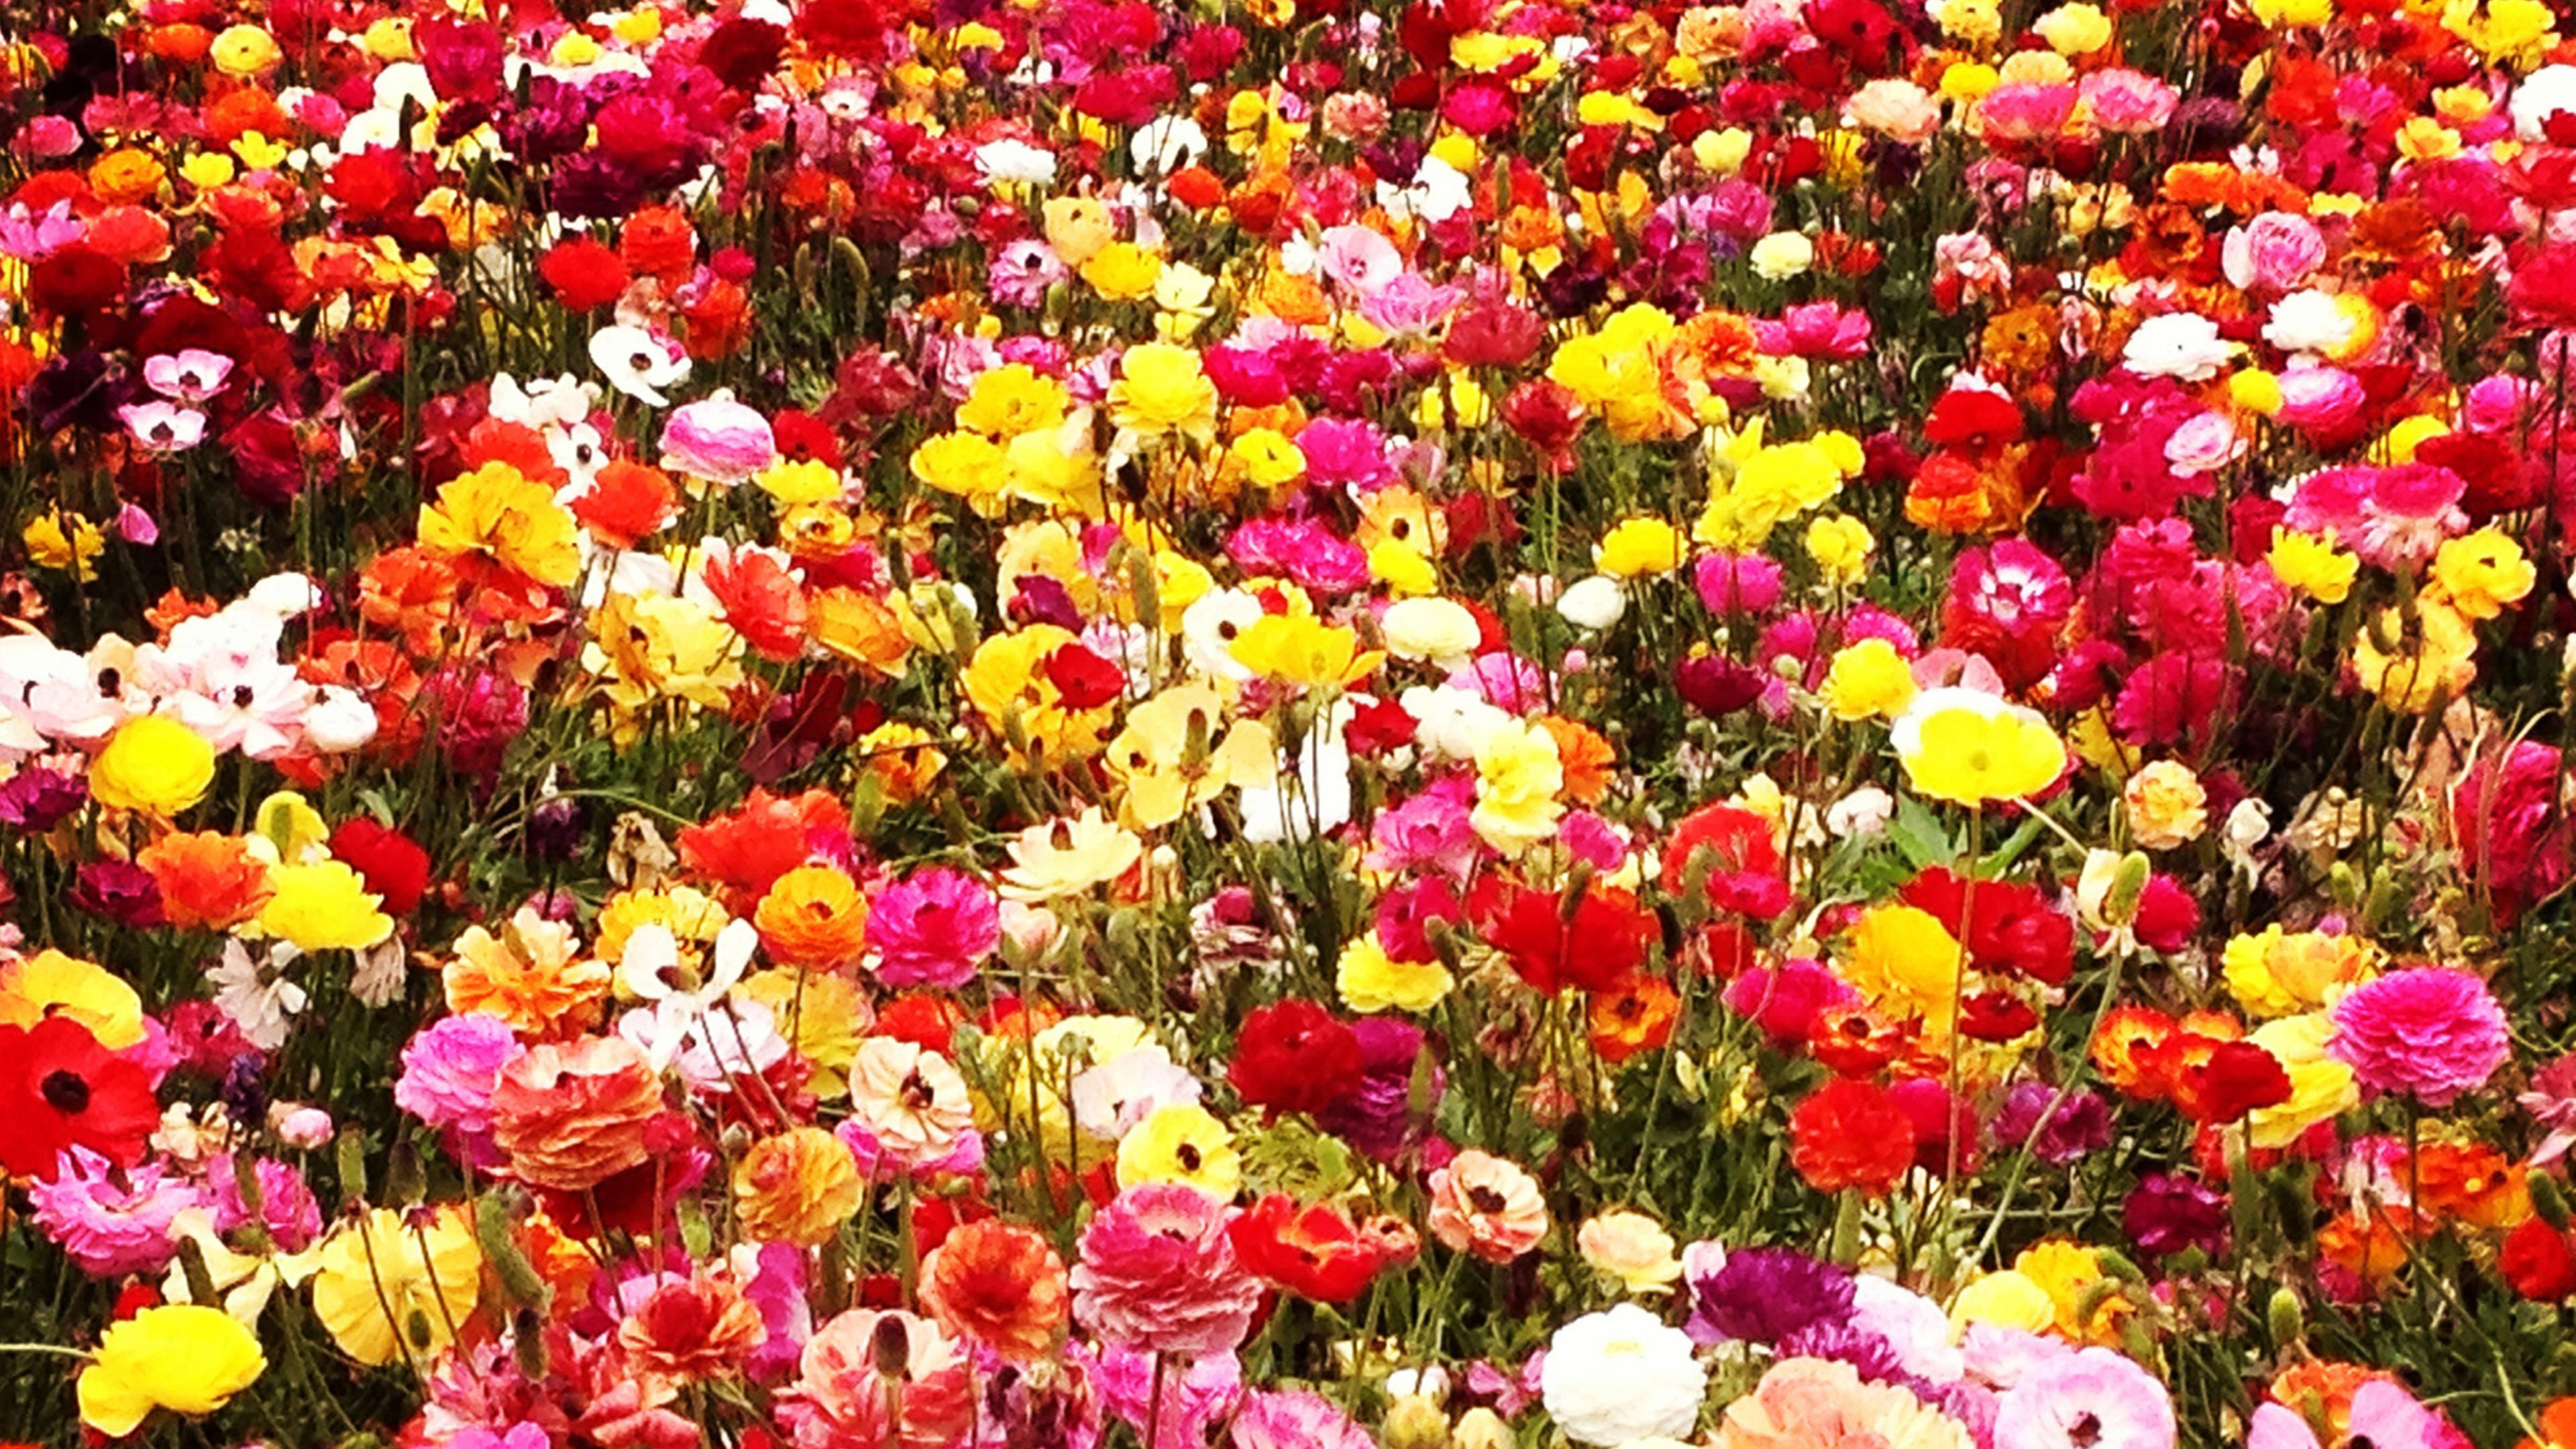 A field with colorful flowers Wallpaper Download 3840x2160